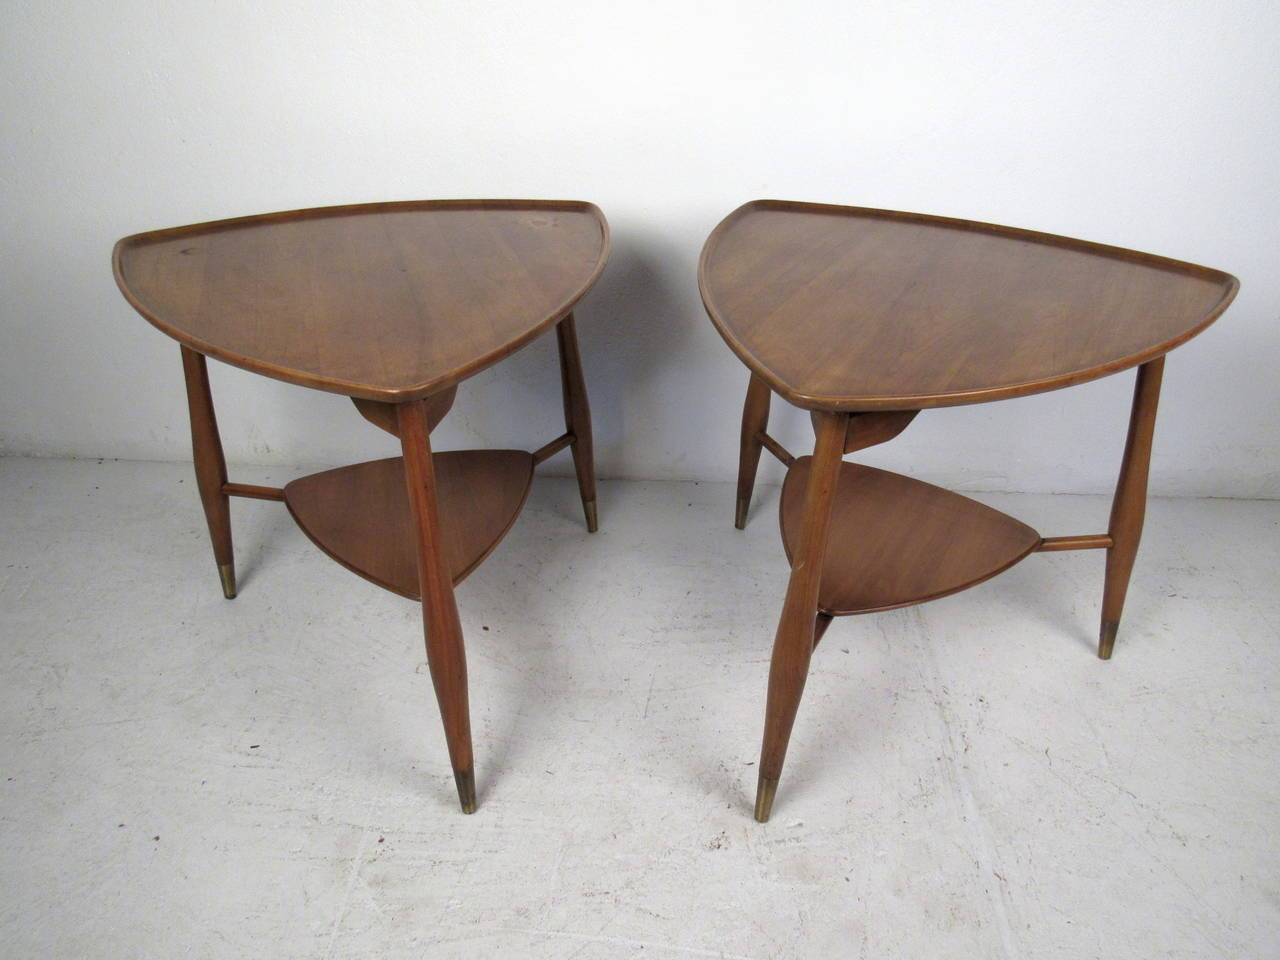 This Pair Of Mid Century End Tables By John Widdicomb Feature A Two Tier  Design,